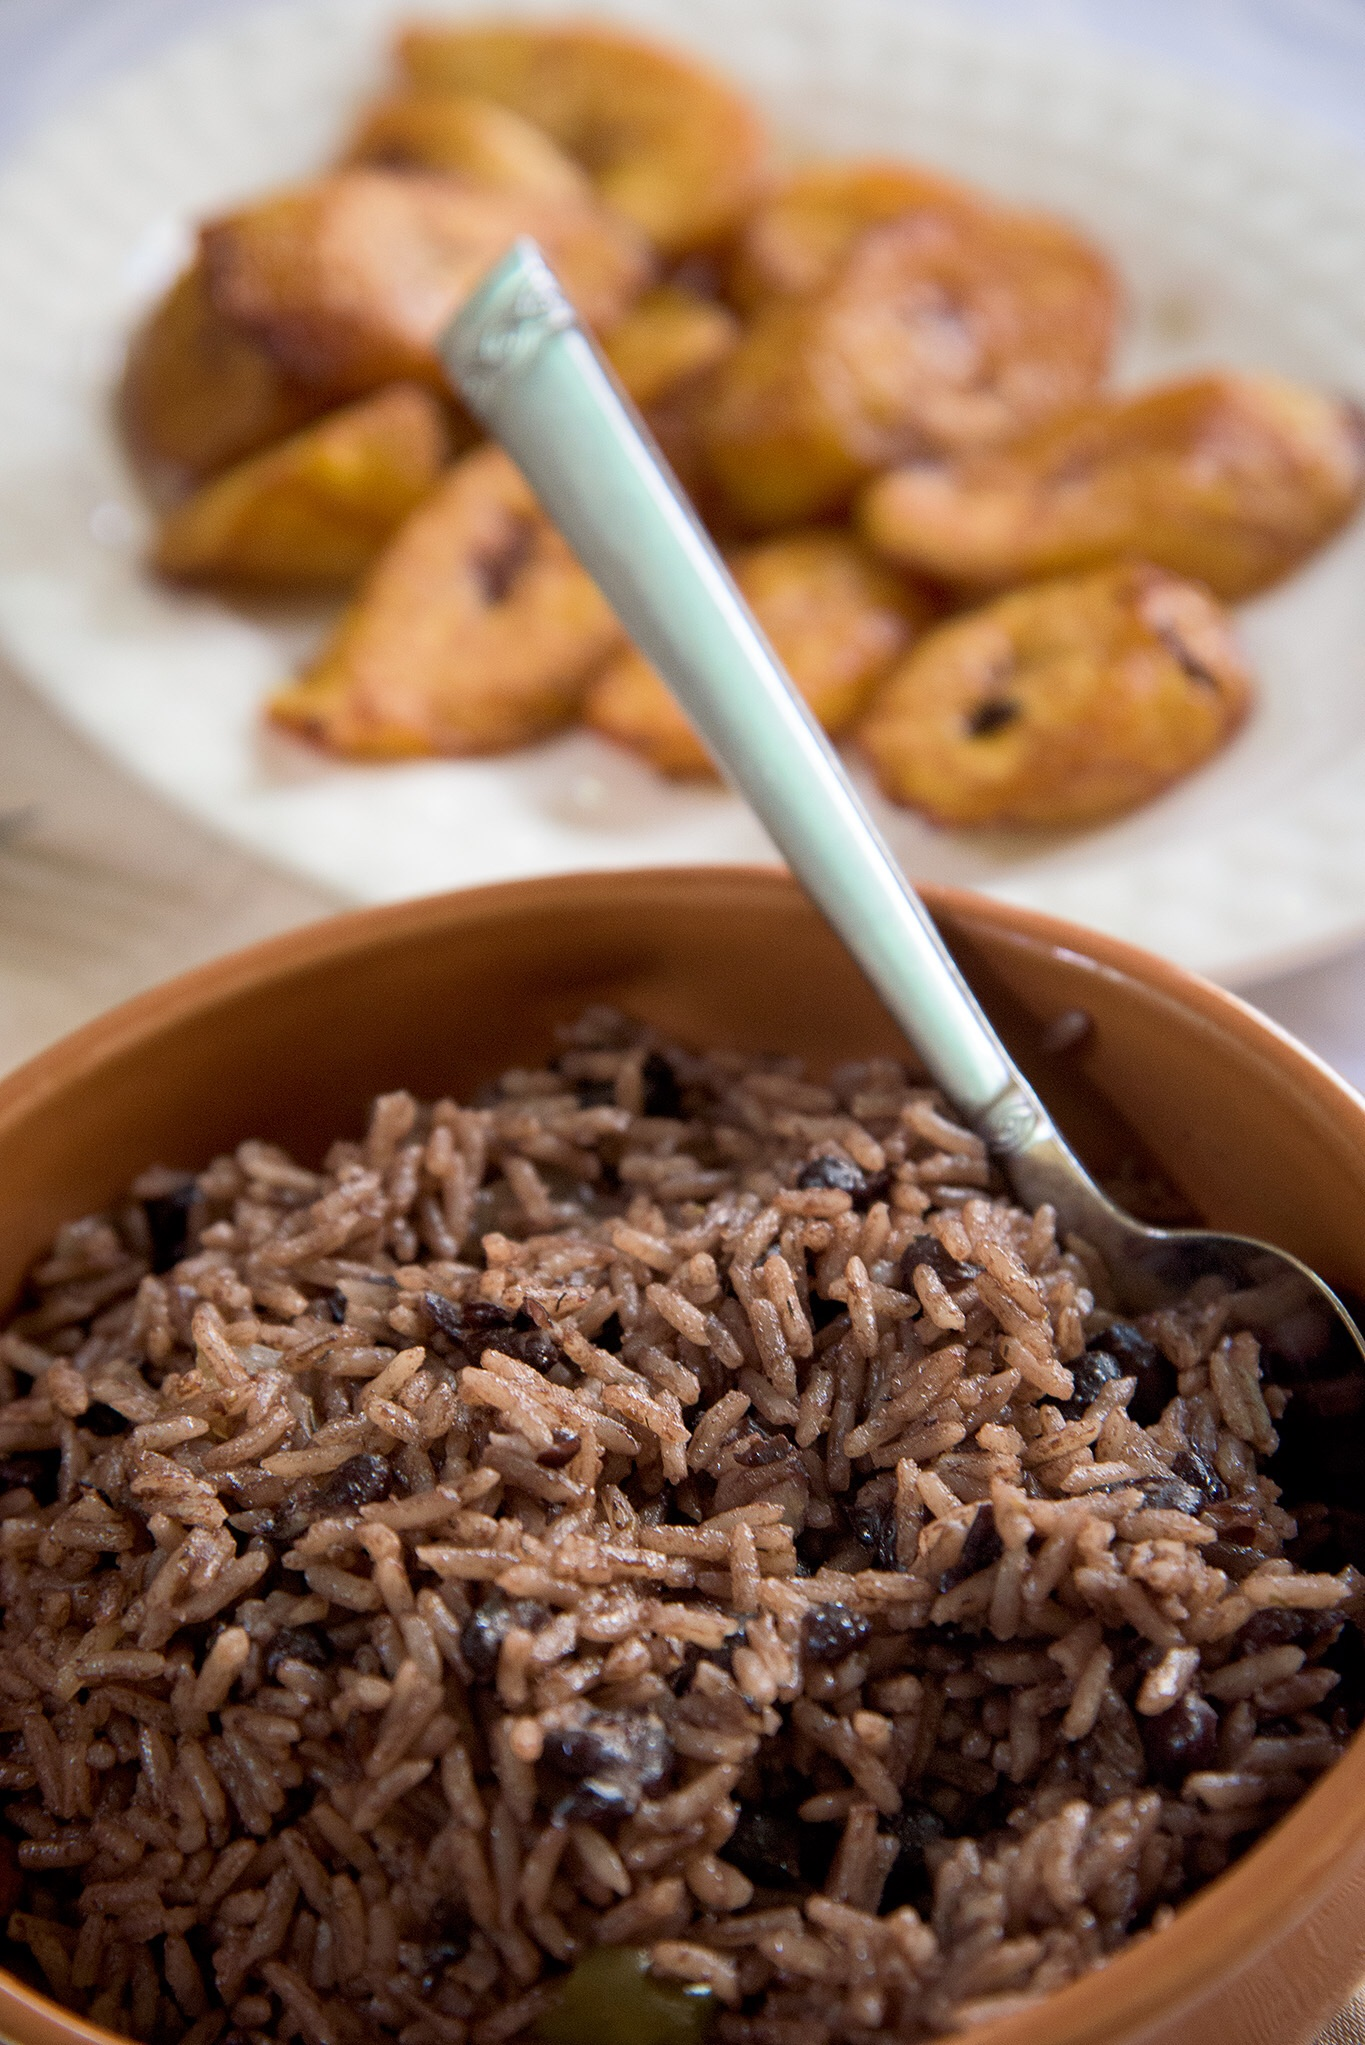 A typical meal served during our visit to Cuba; fried plantains and rice and beans.